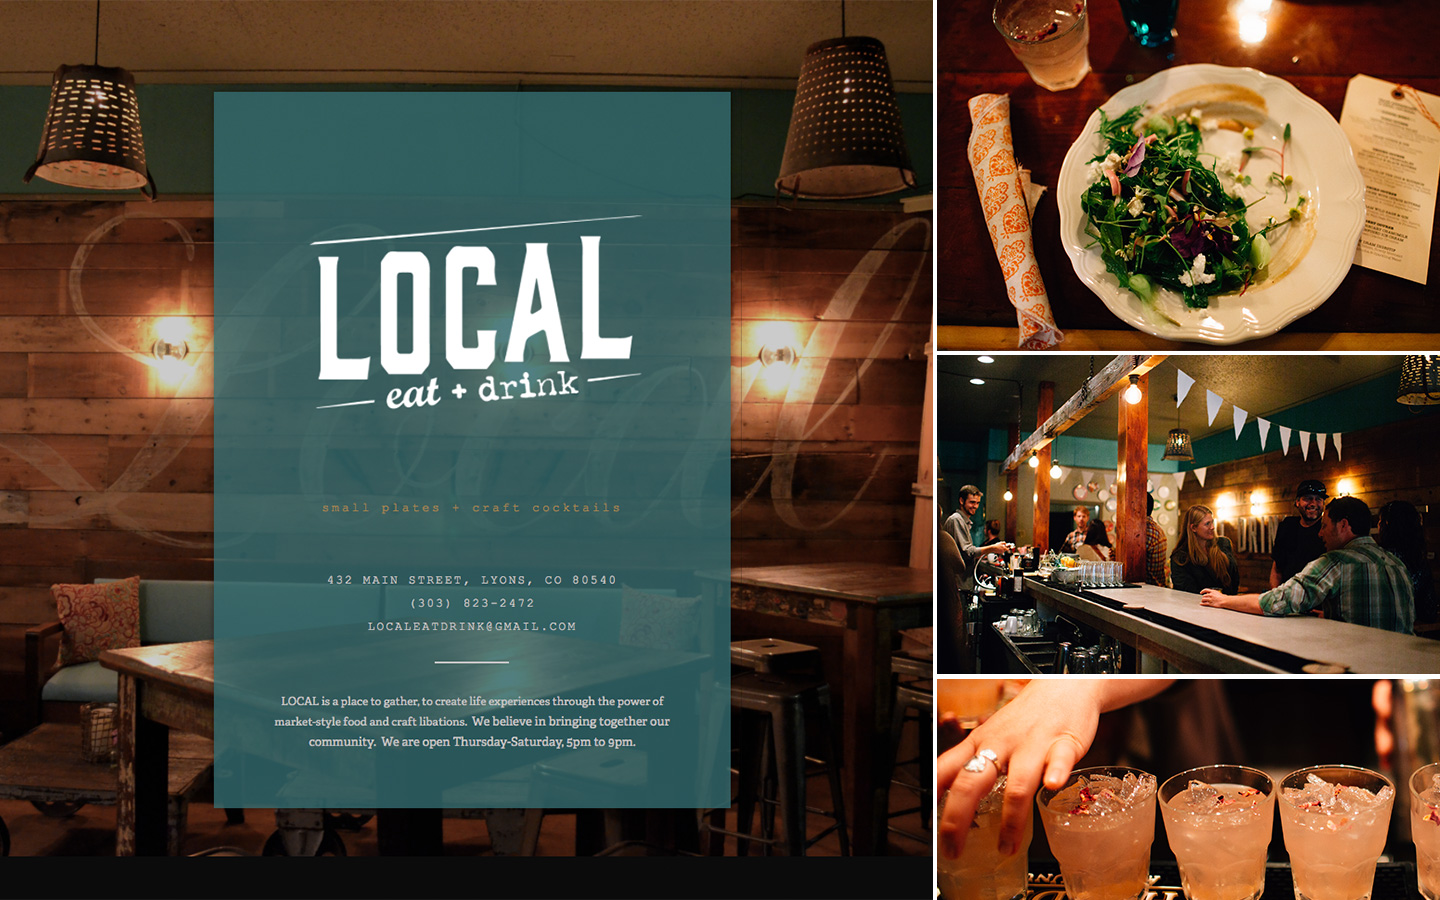 Local Eat + Drink